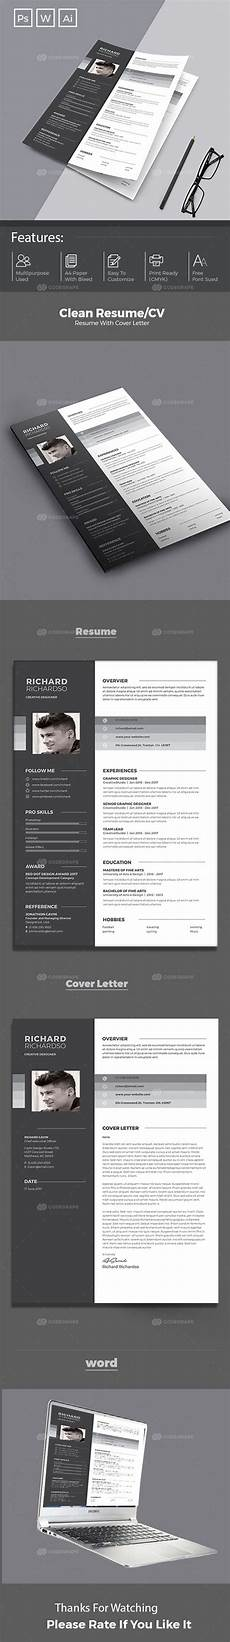 resume with images simple resume template clean resume